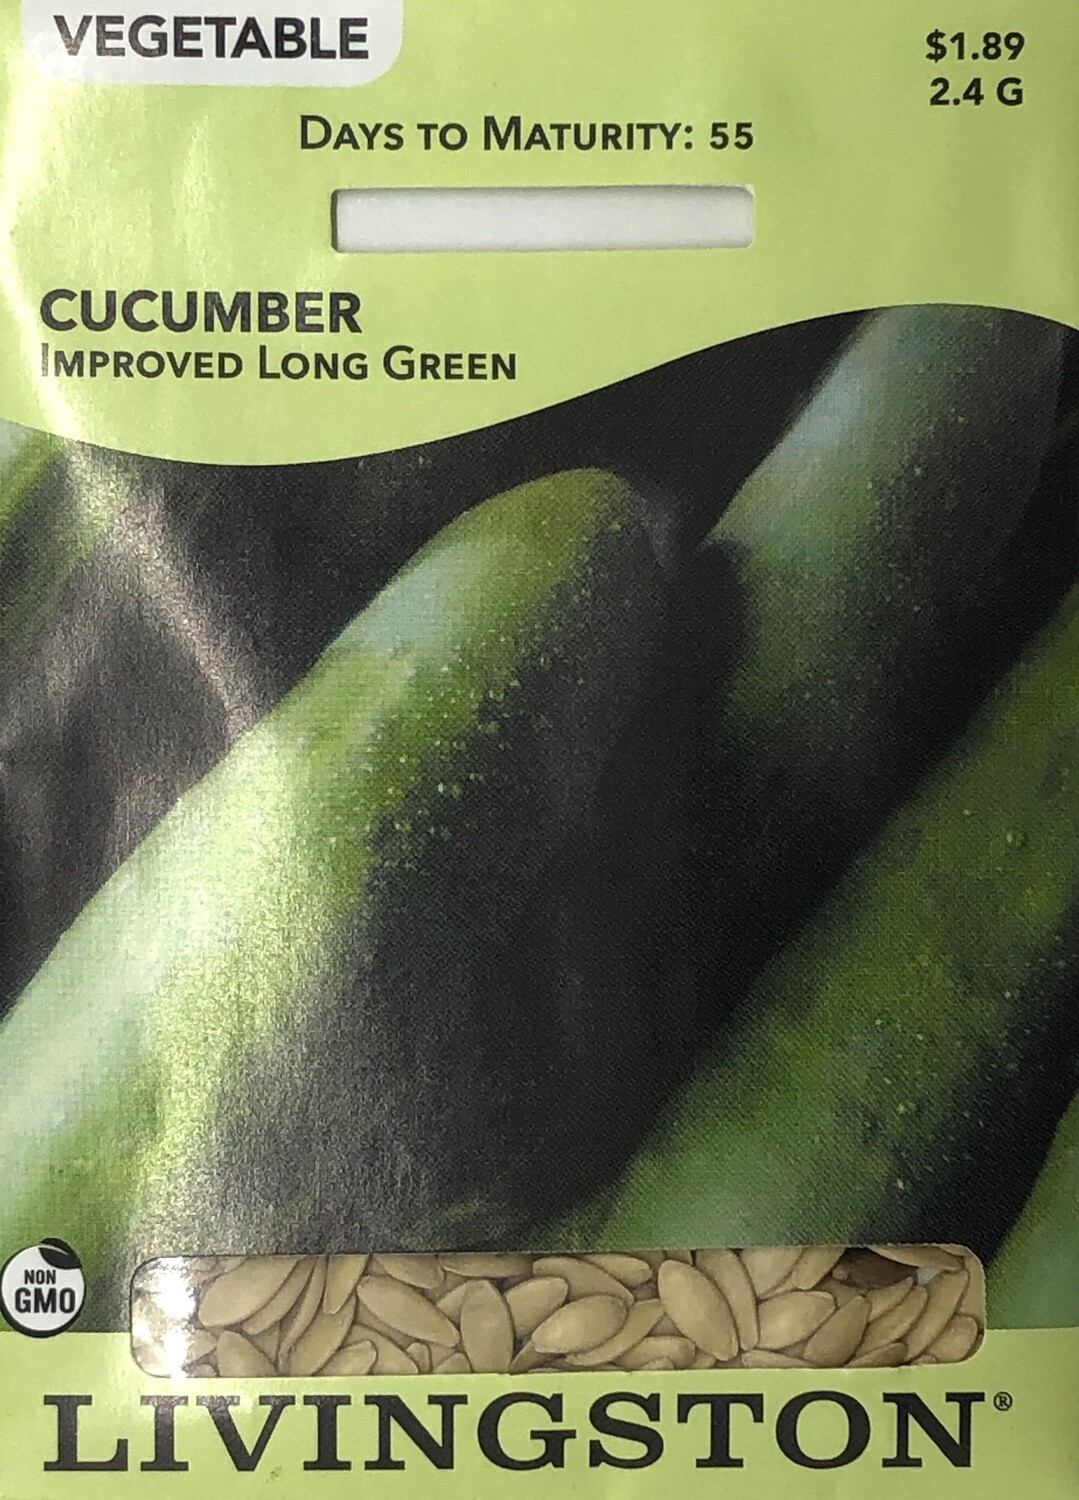 CUCUMBER - IMPROVED LONG GREEN